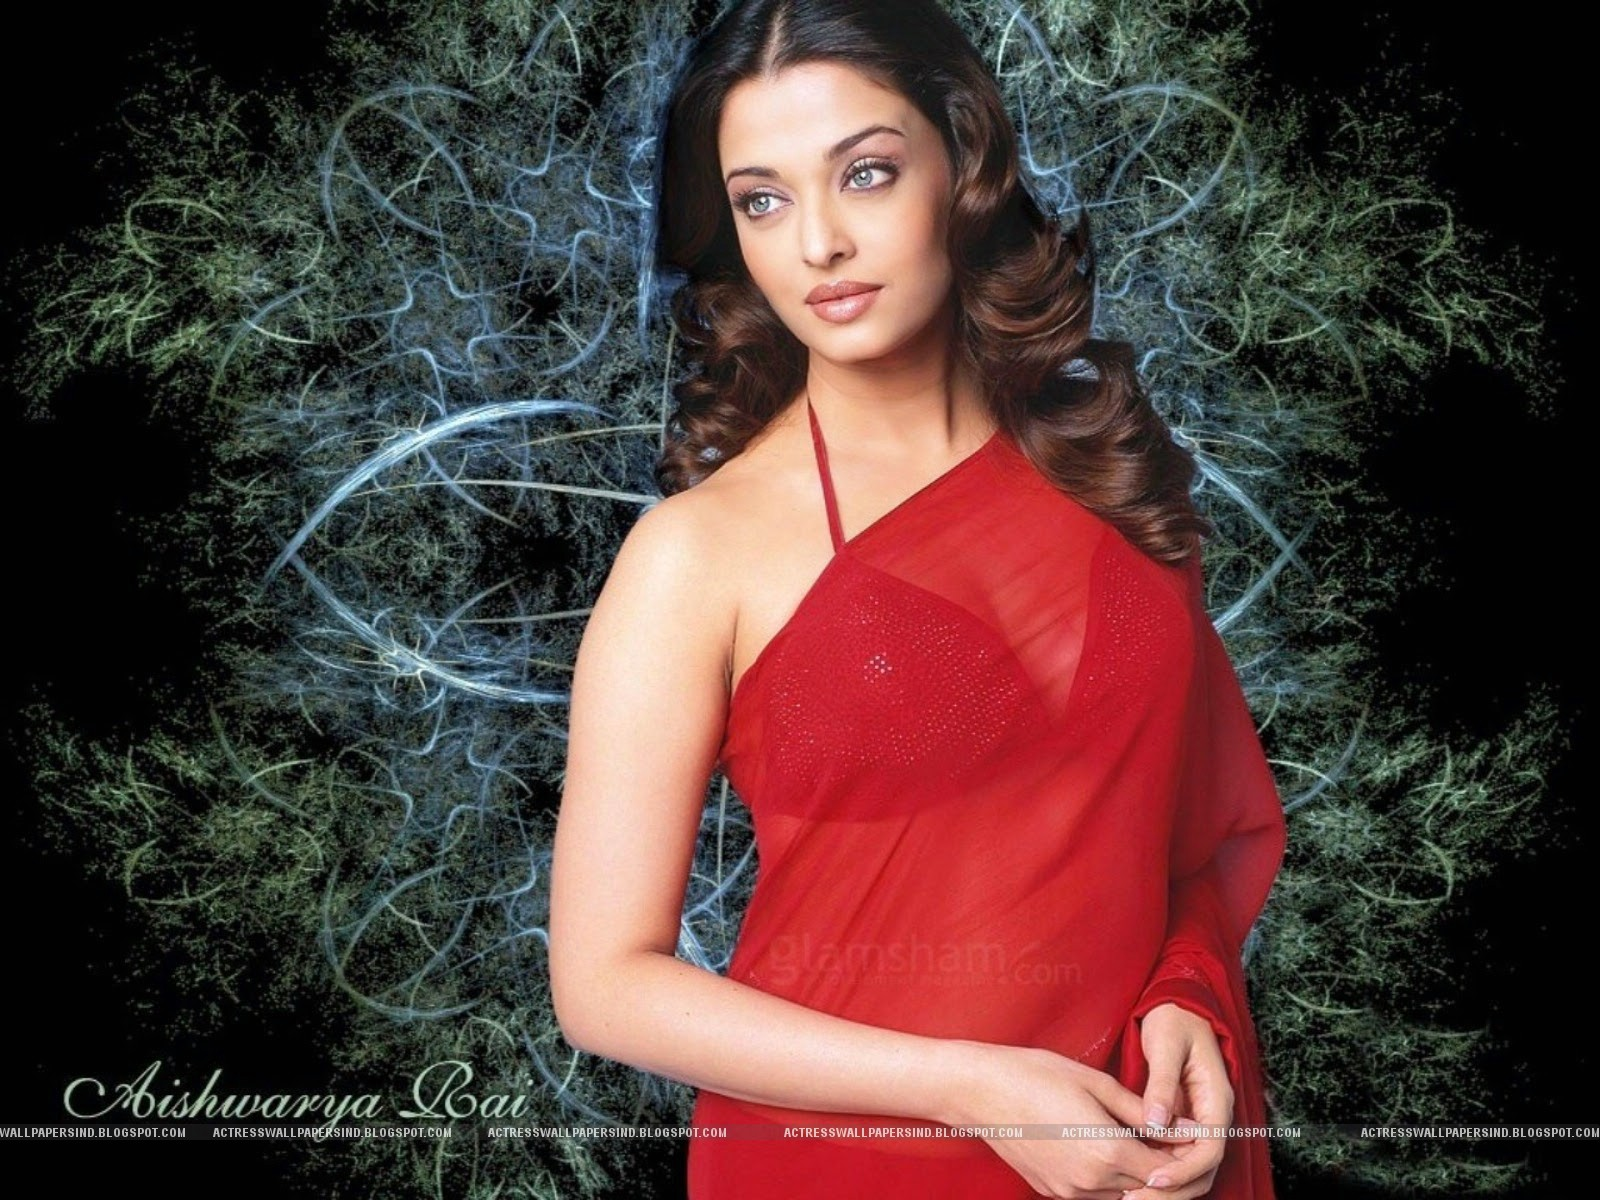 Aishwarya Rai Sexy Photo Shoot Hd Full - A Wind